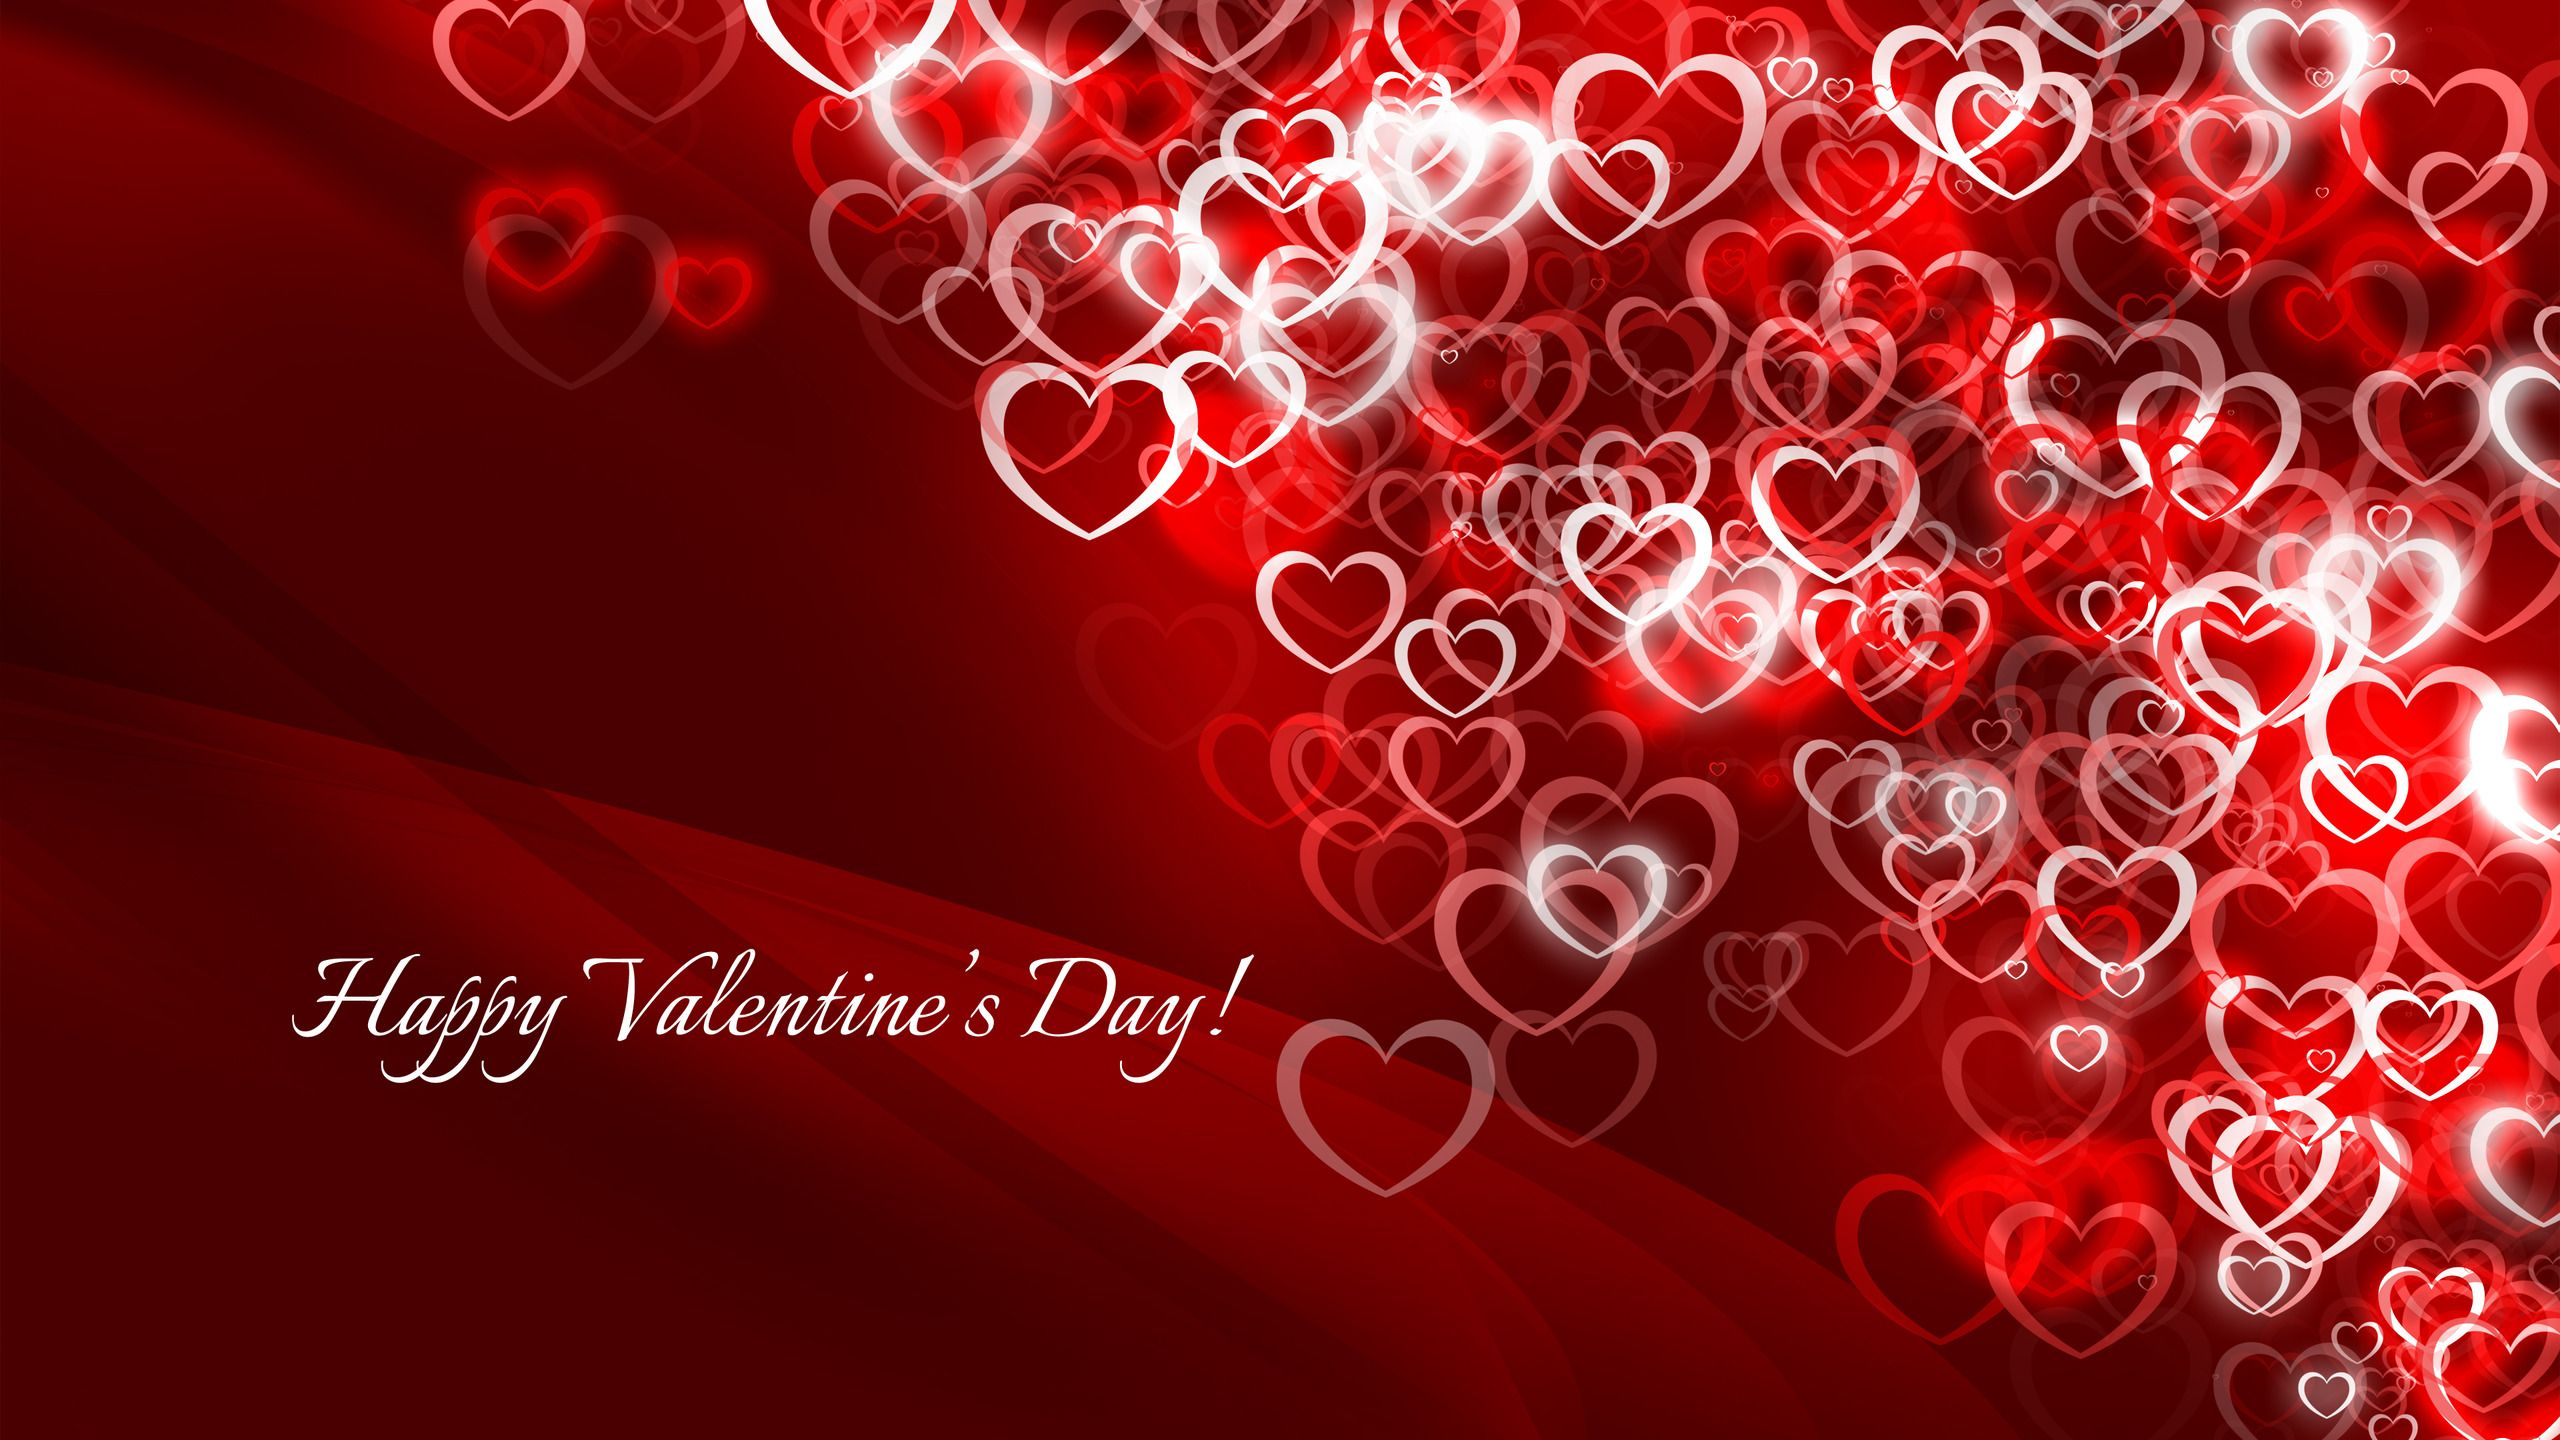 Valentines Day Wallpapers HD & 14th FEB image 2020 for lovers